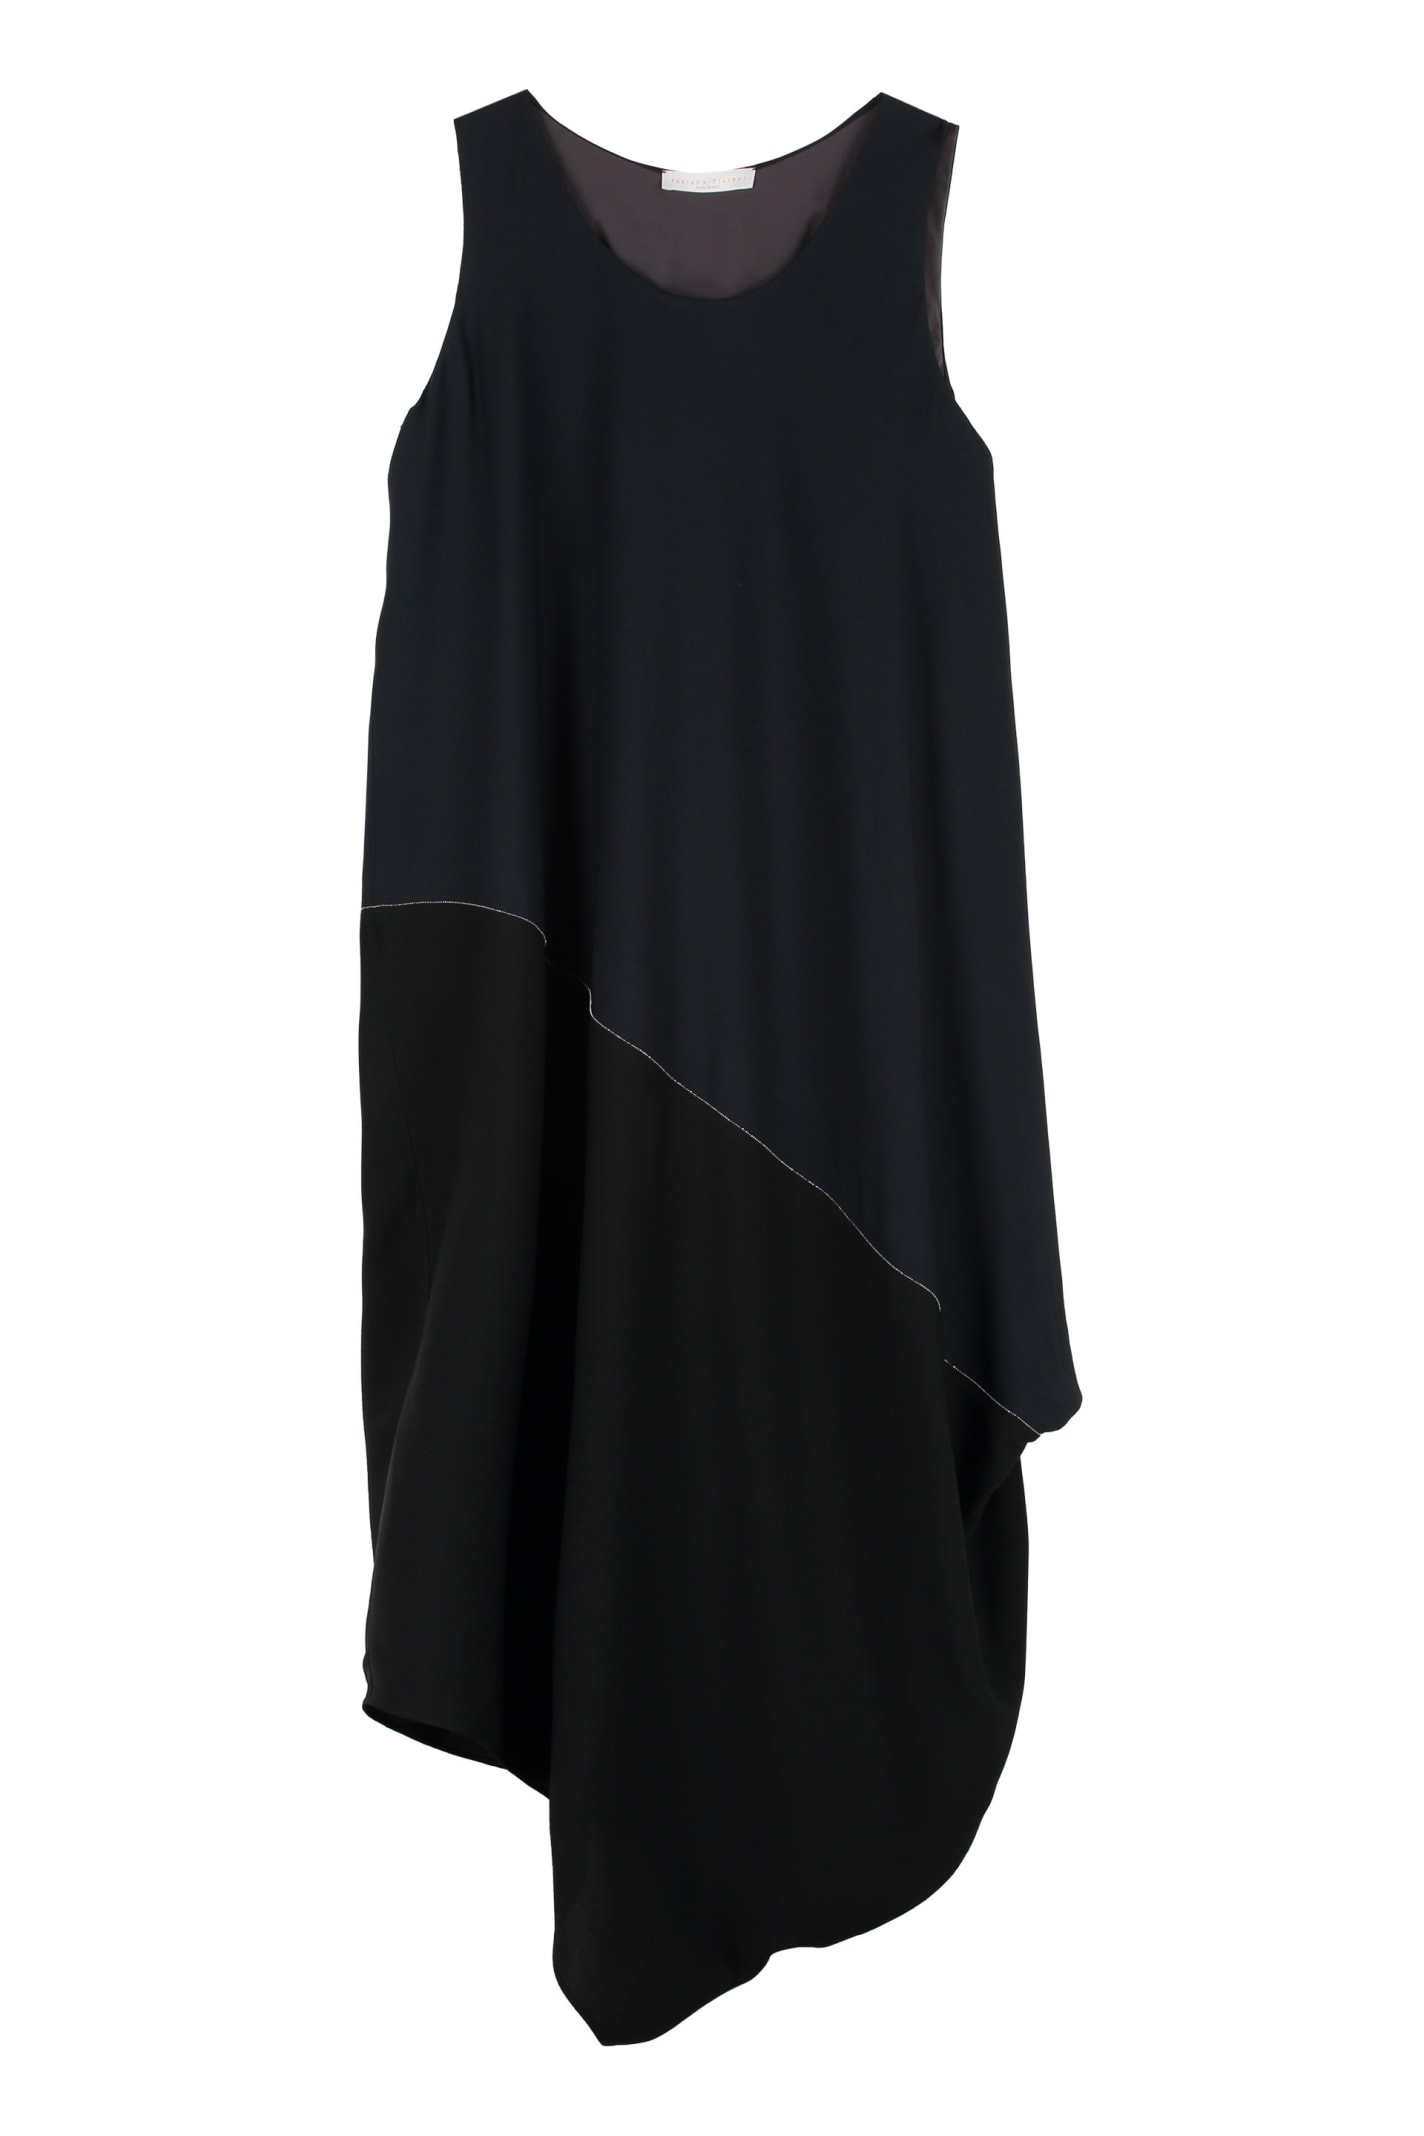 Fabiana Filippi Draped Asymmetric Dress